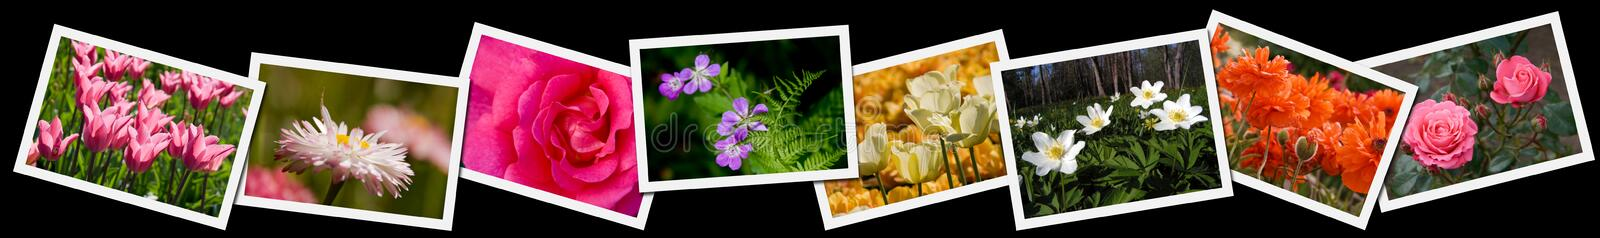 collageblommafotografier stock illustrationer